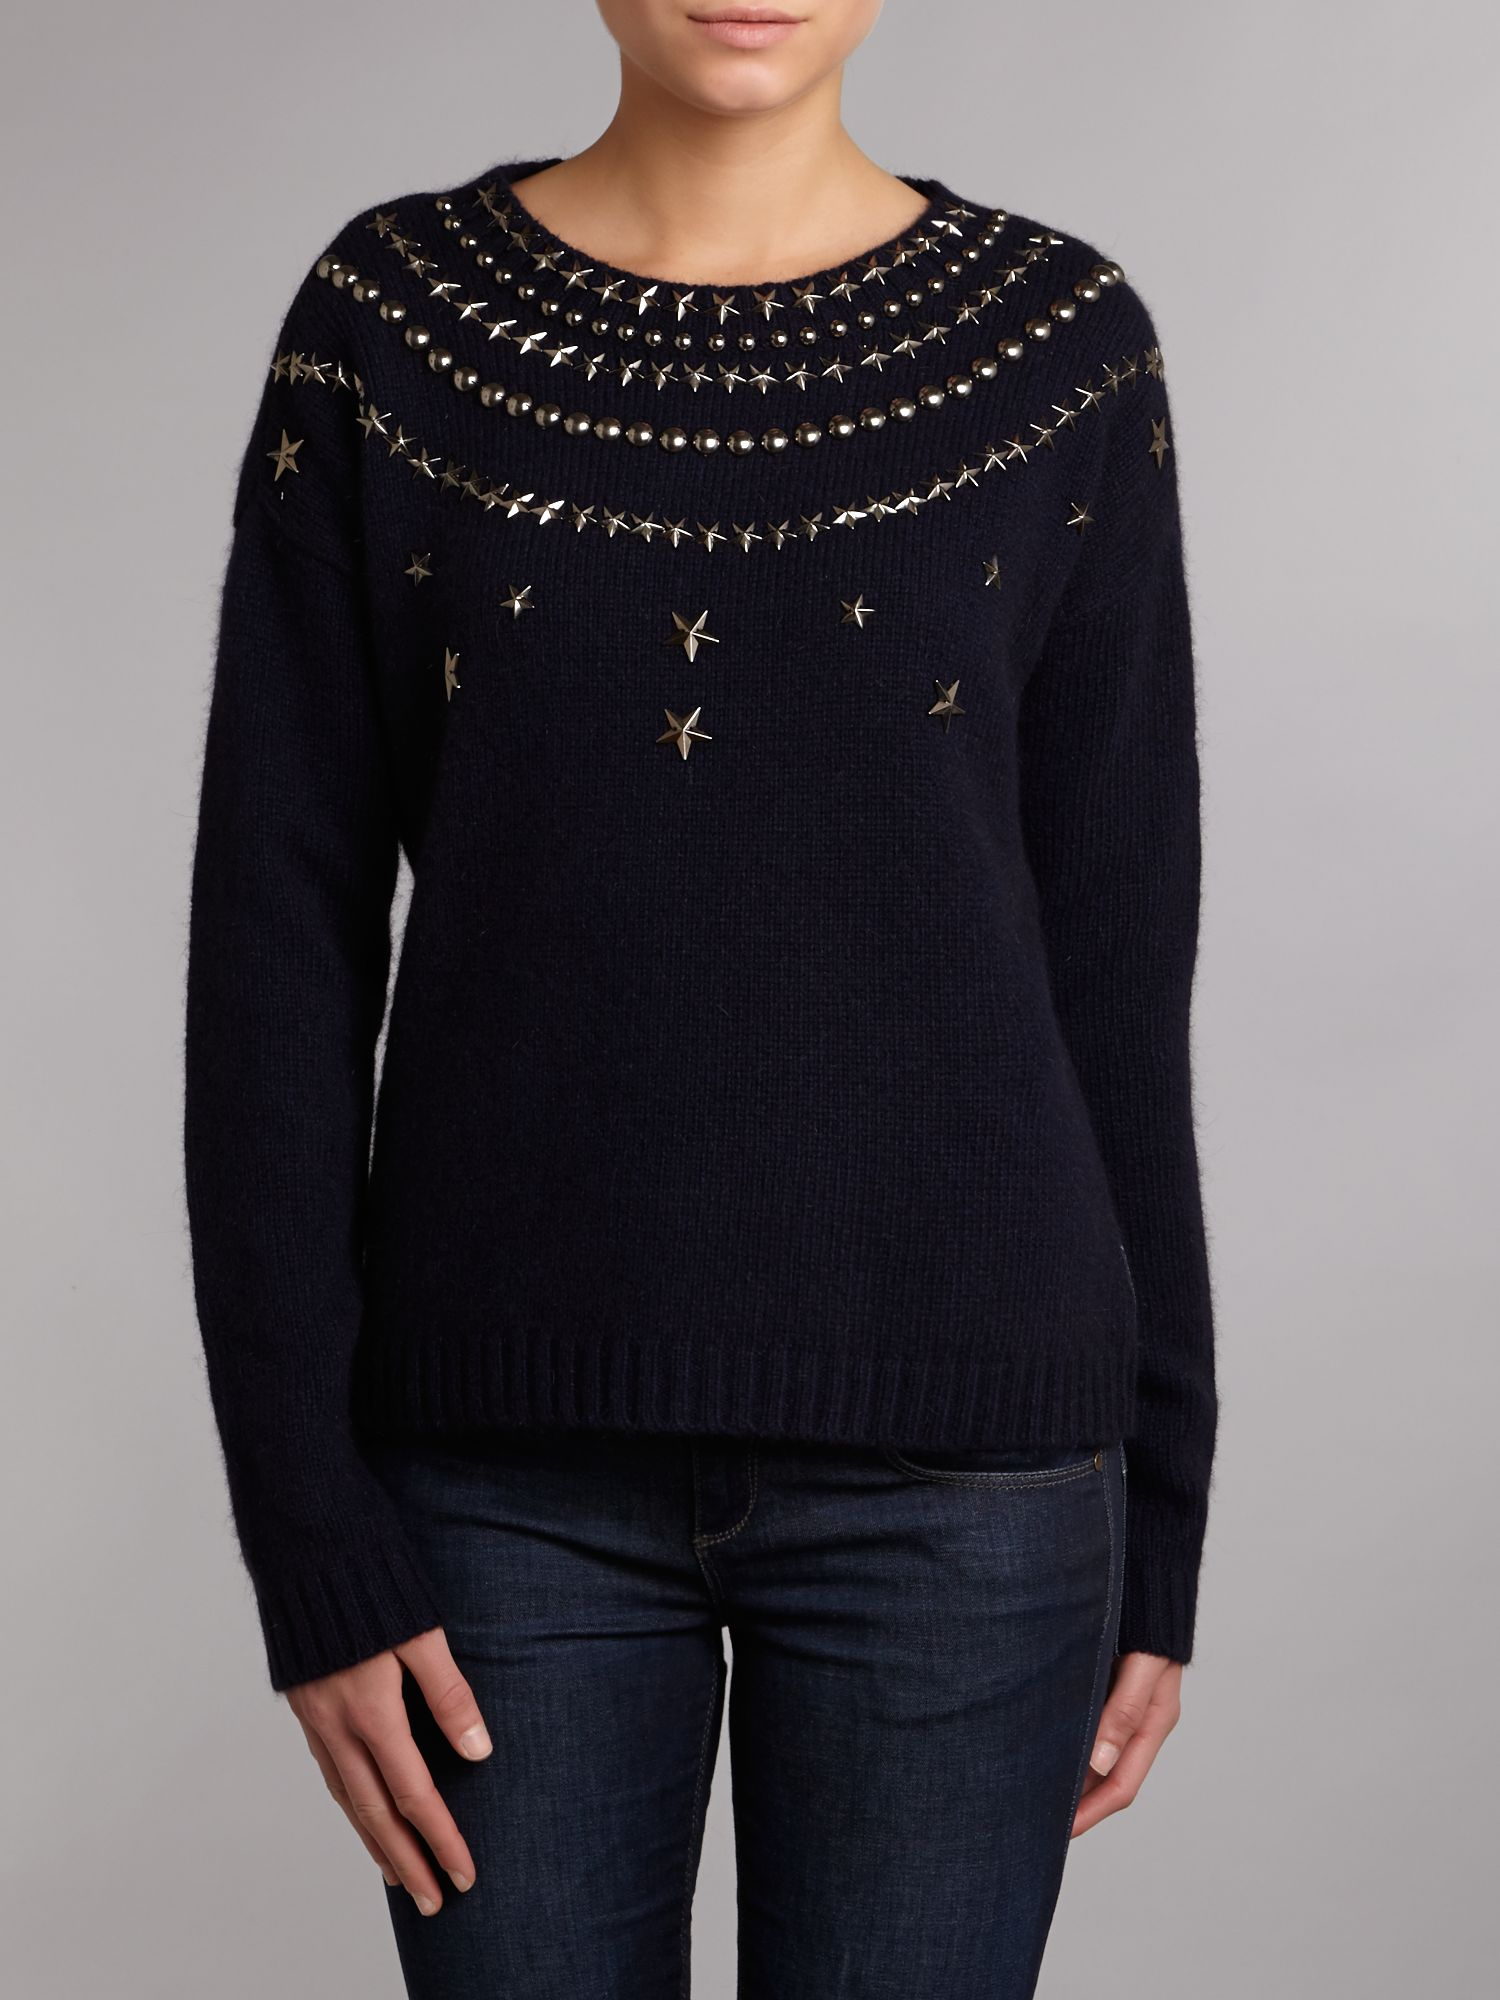 Wool jumper with star stud detail